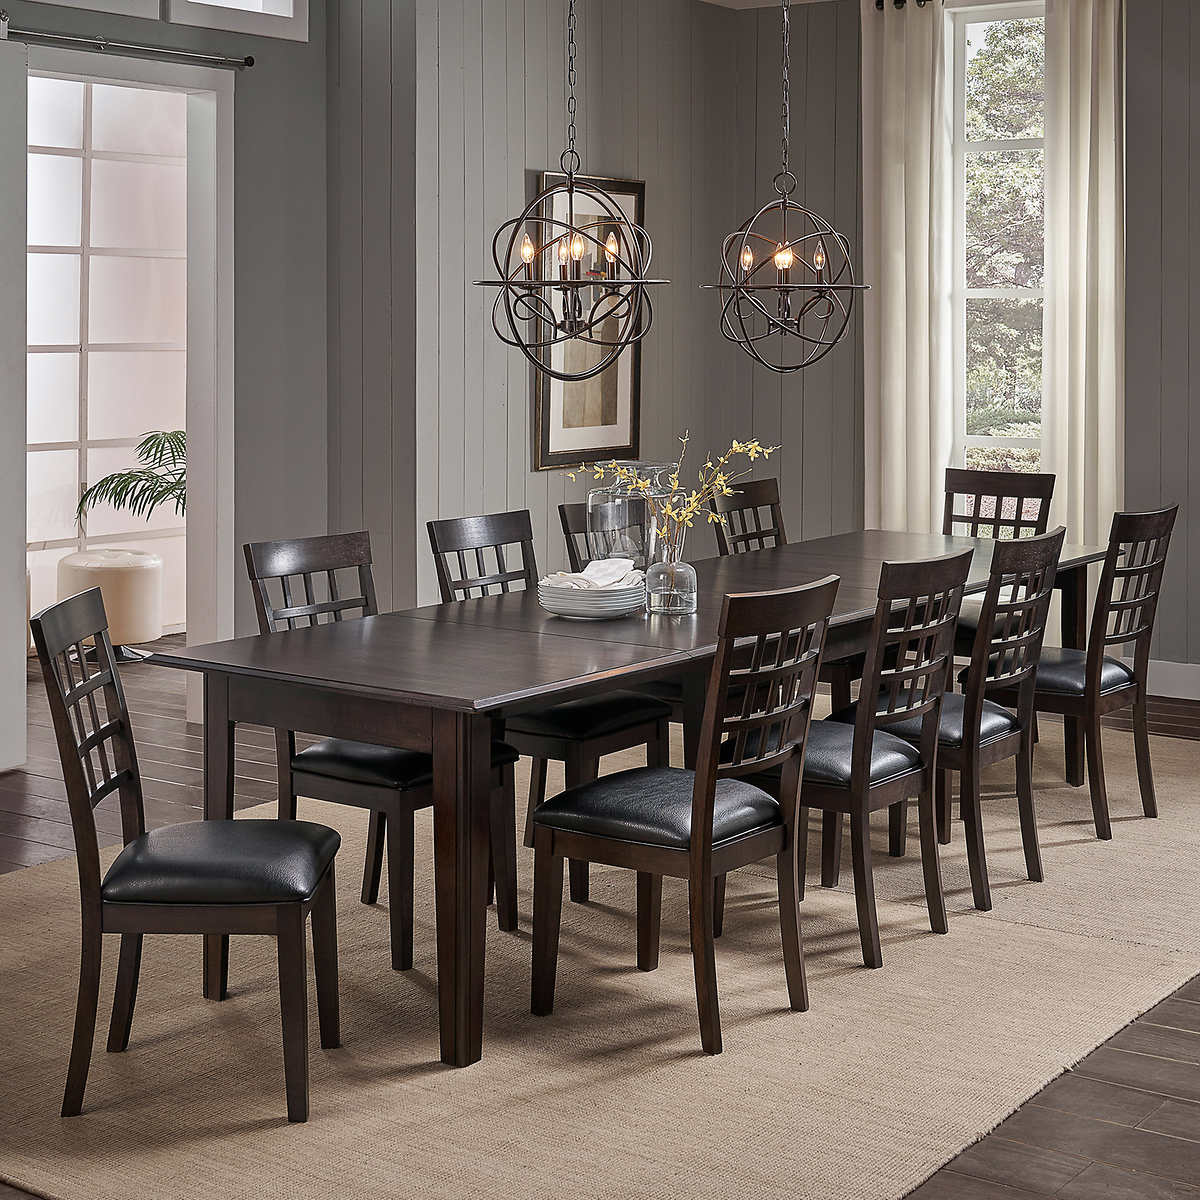 alec piece dining set - alec piece dining set item  click to zoom